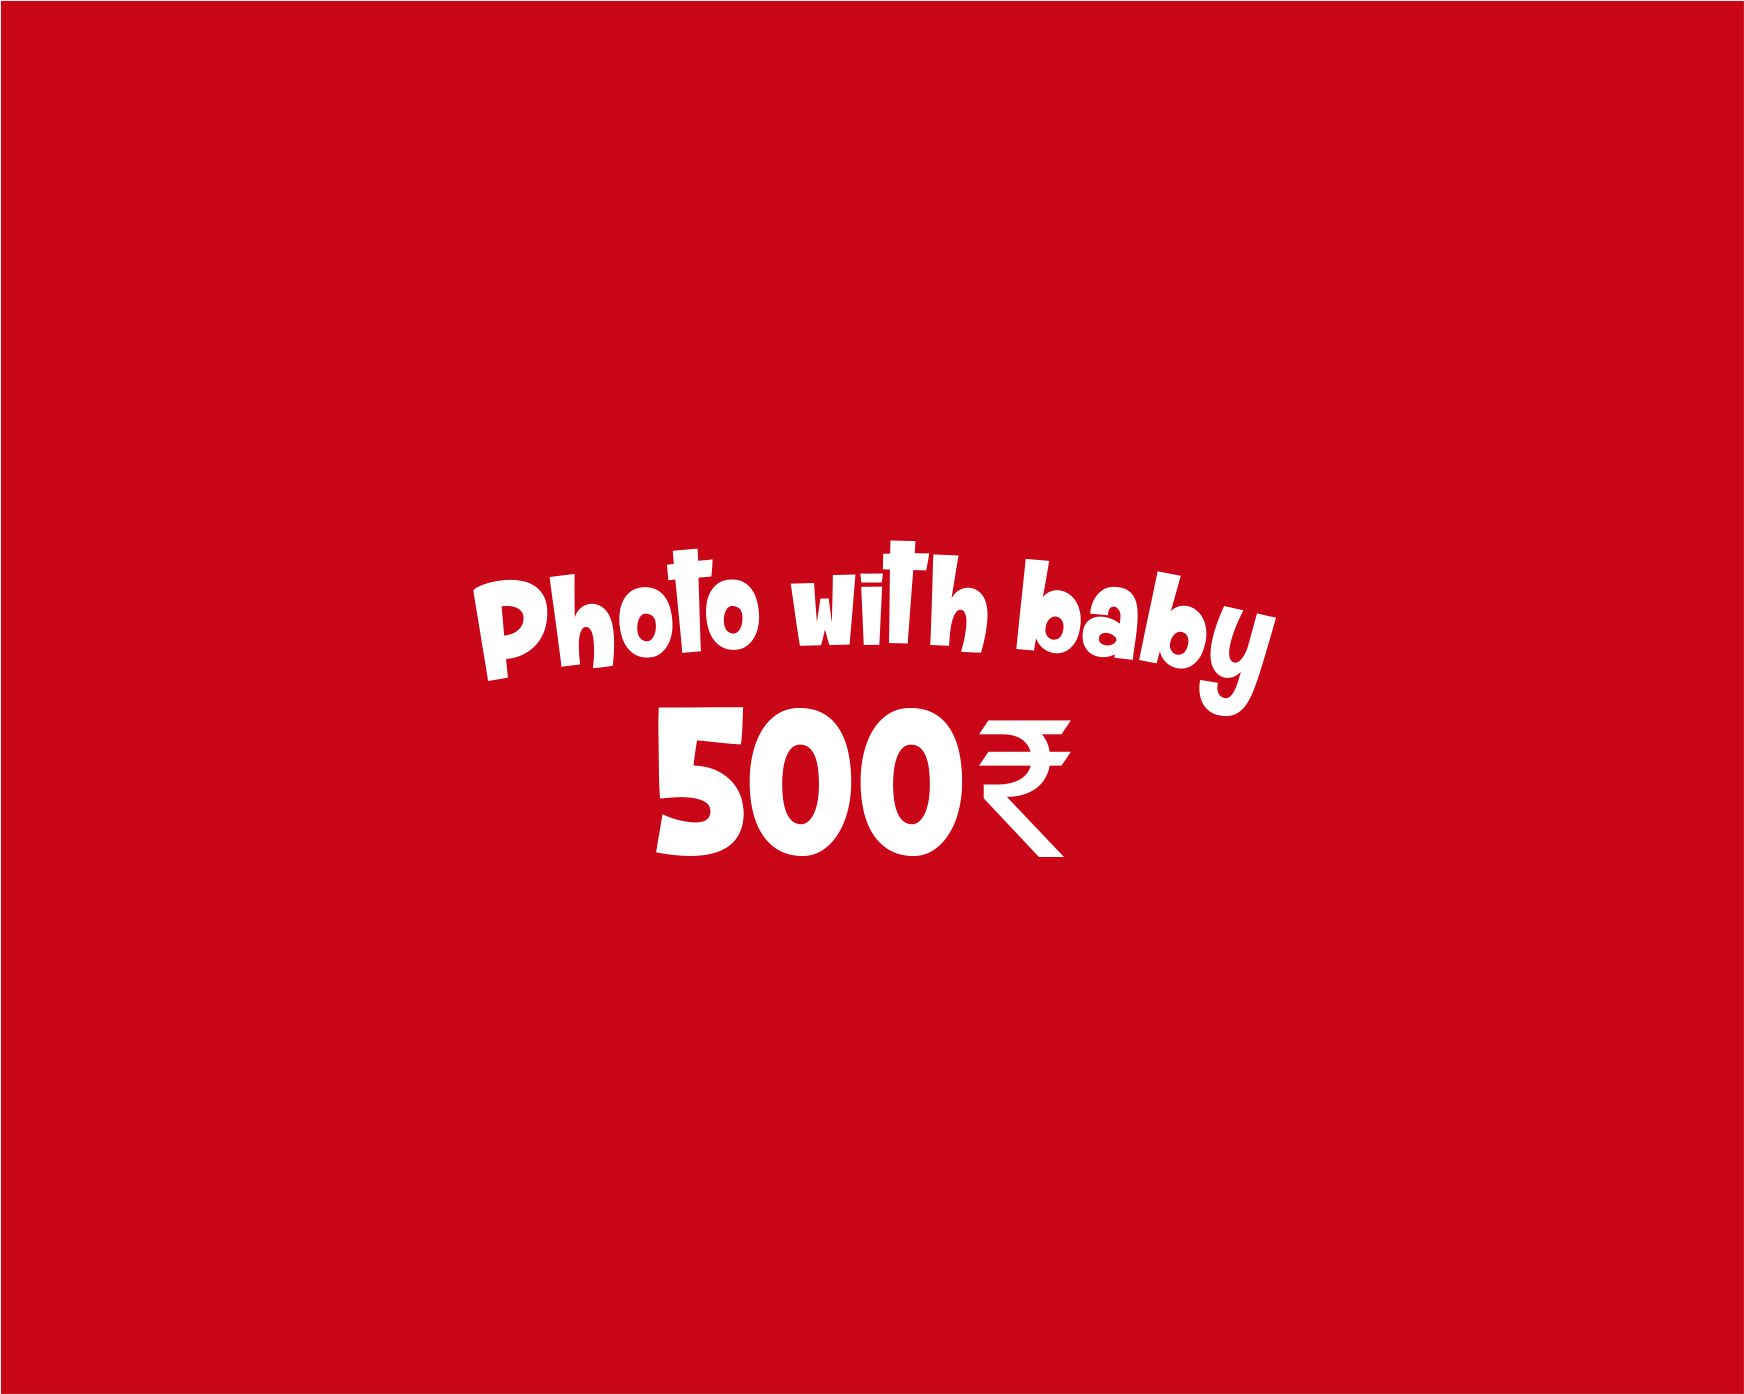 PHOTO-WITH-BABY-500....jpg